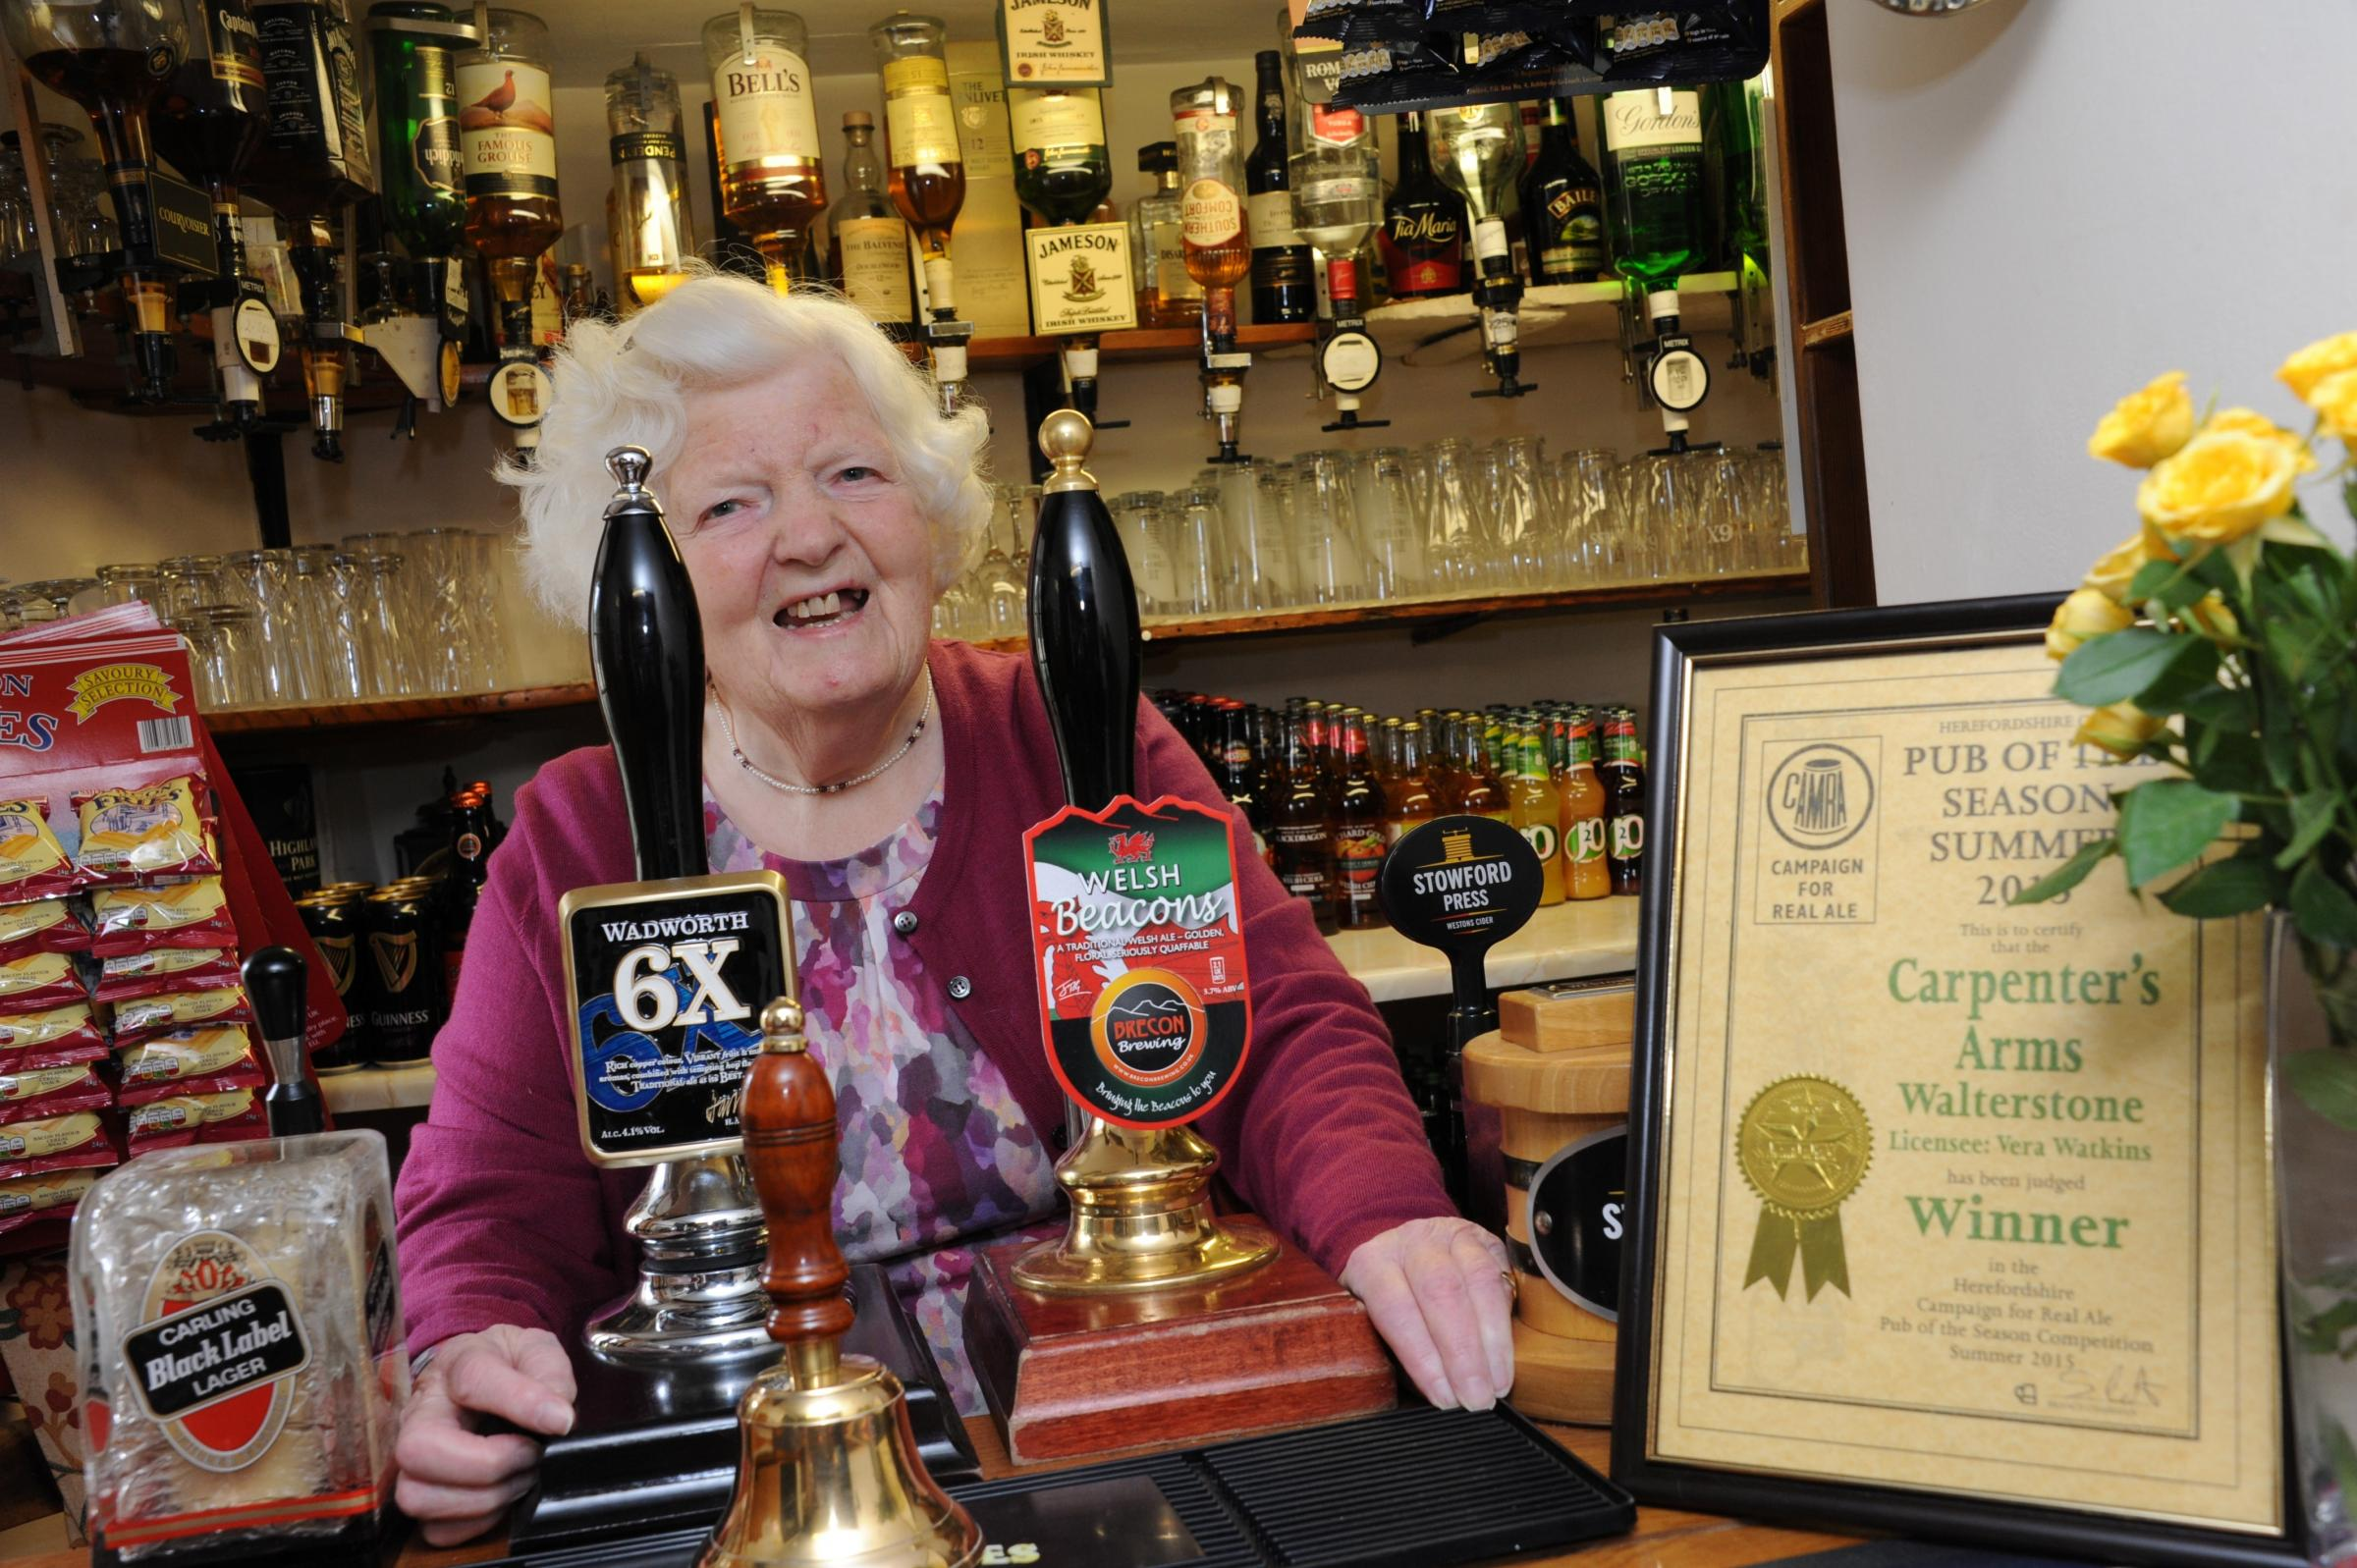 The Carpenter's Arms run by 80-year-old Vera Watkins has been named CAMRA's 'Pub of the Season'. 1523_1002 (29084976)